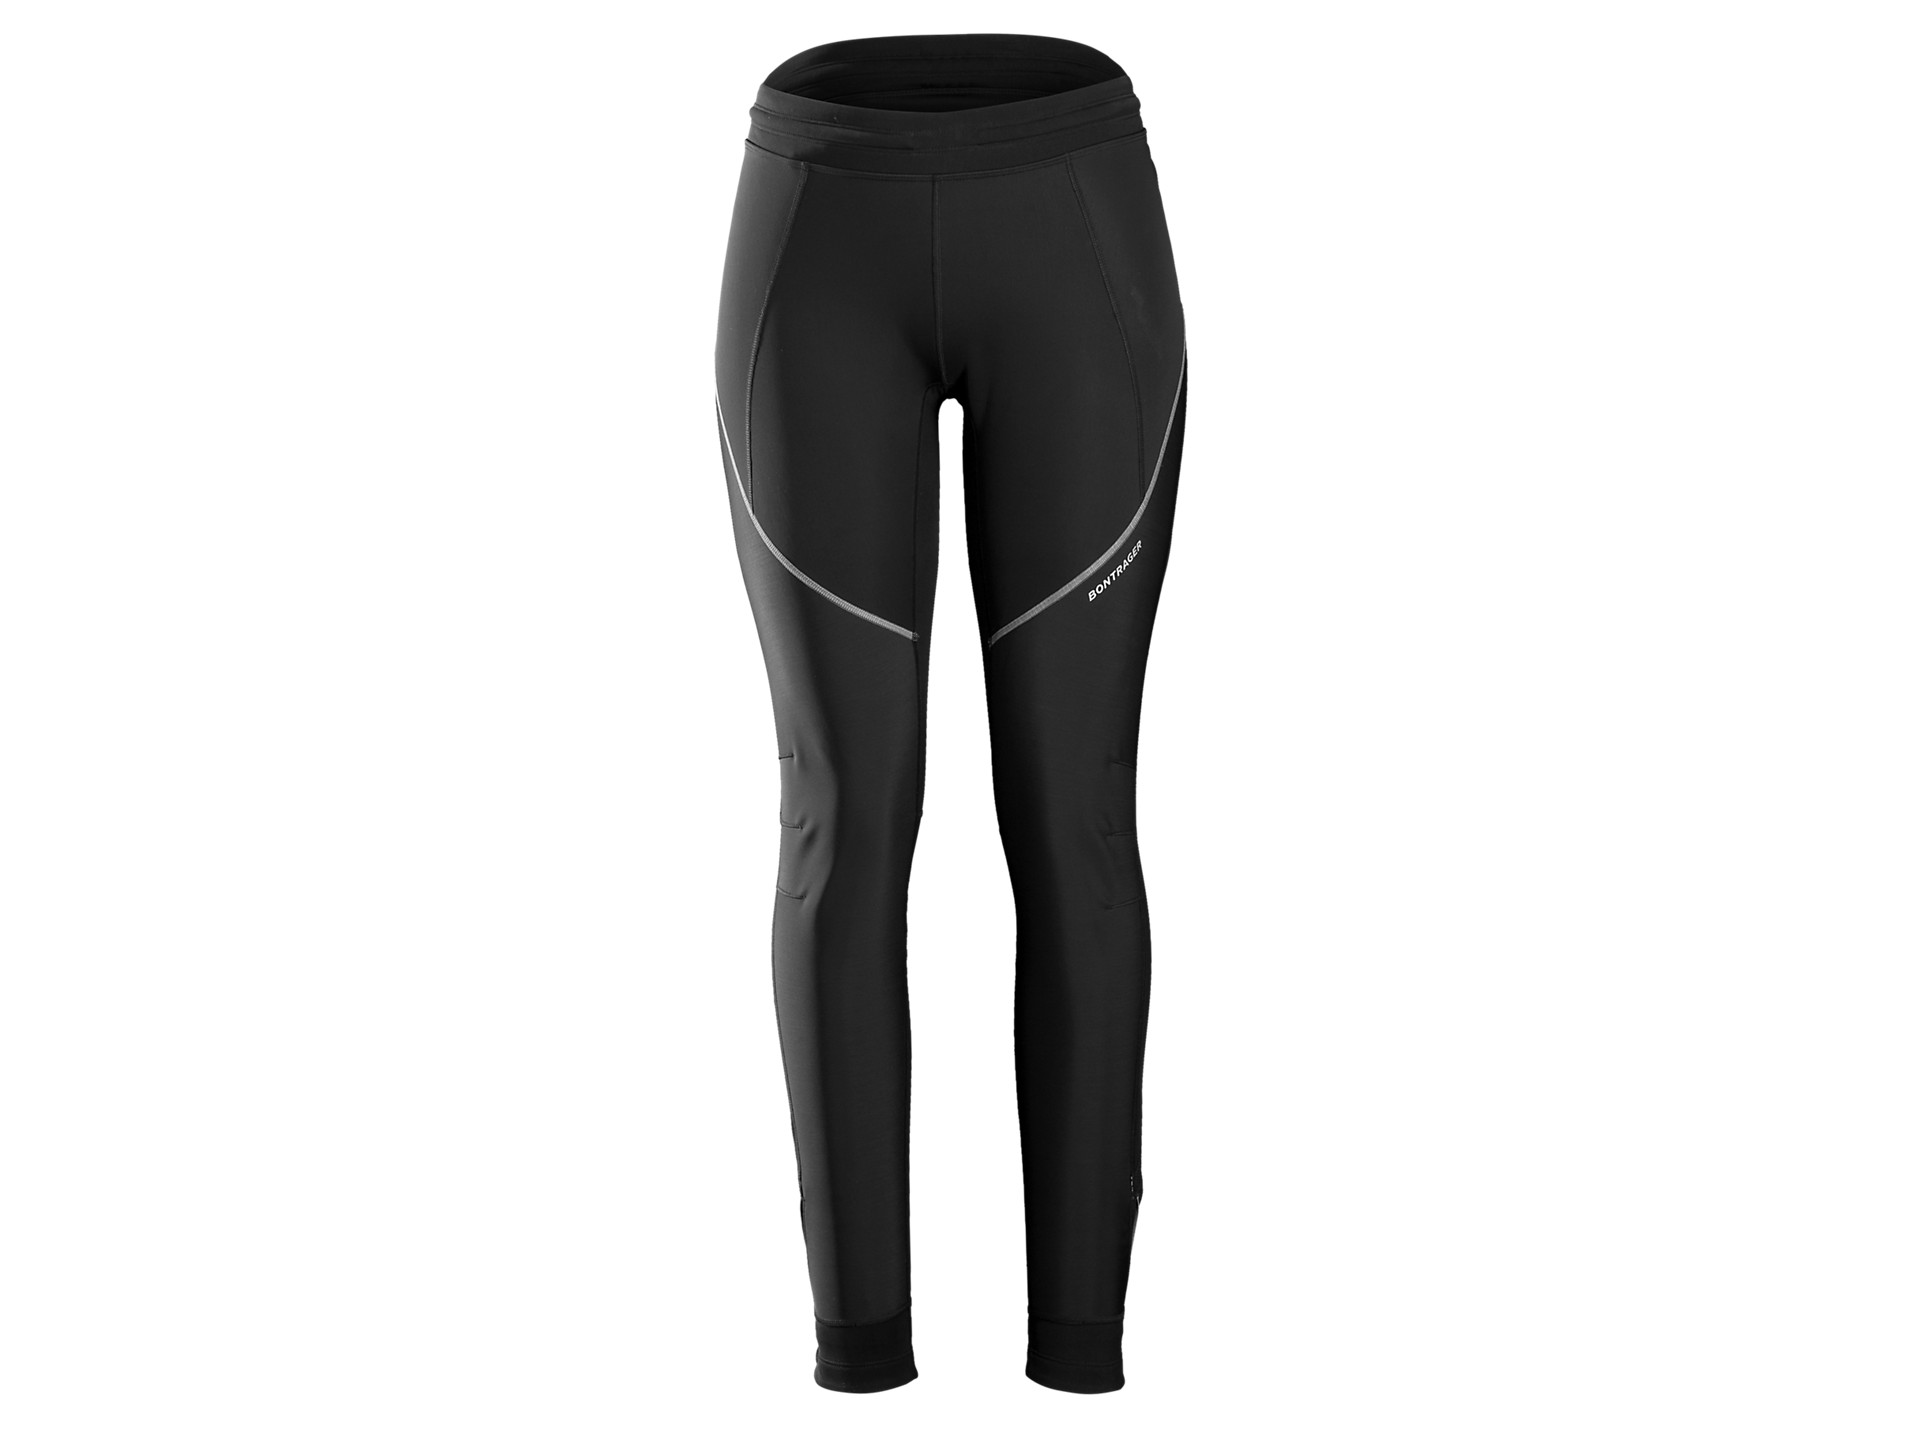 ab0c84da2 Bontrager Meraj S2 Softshell Women's Cycling Tight | Trek Bikes